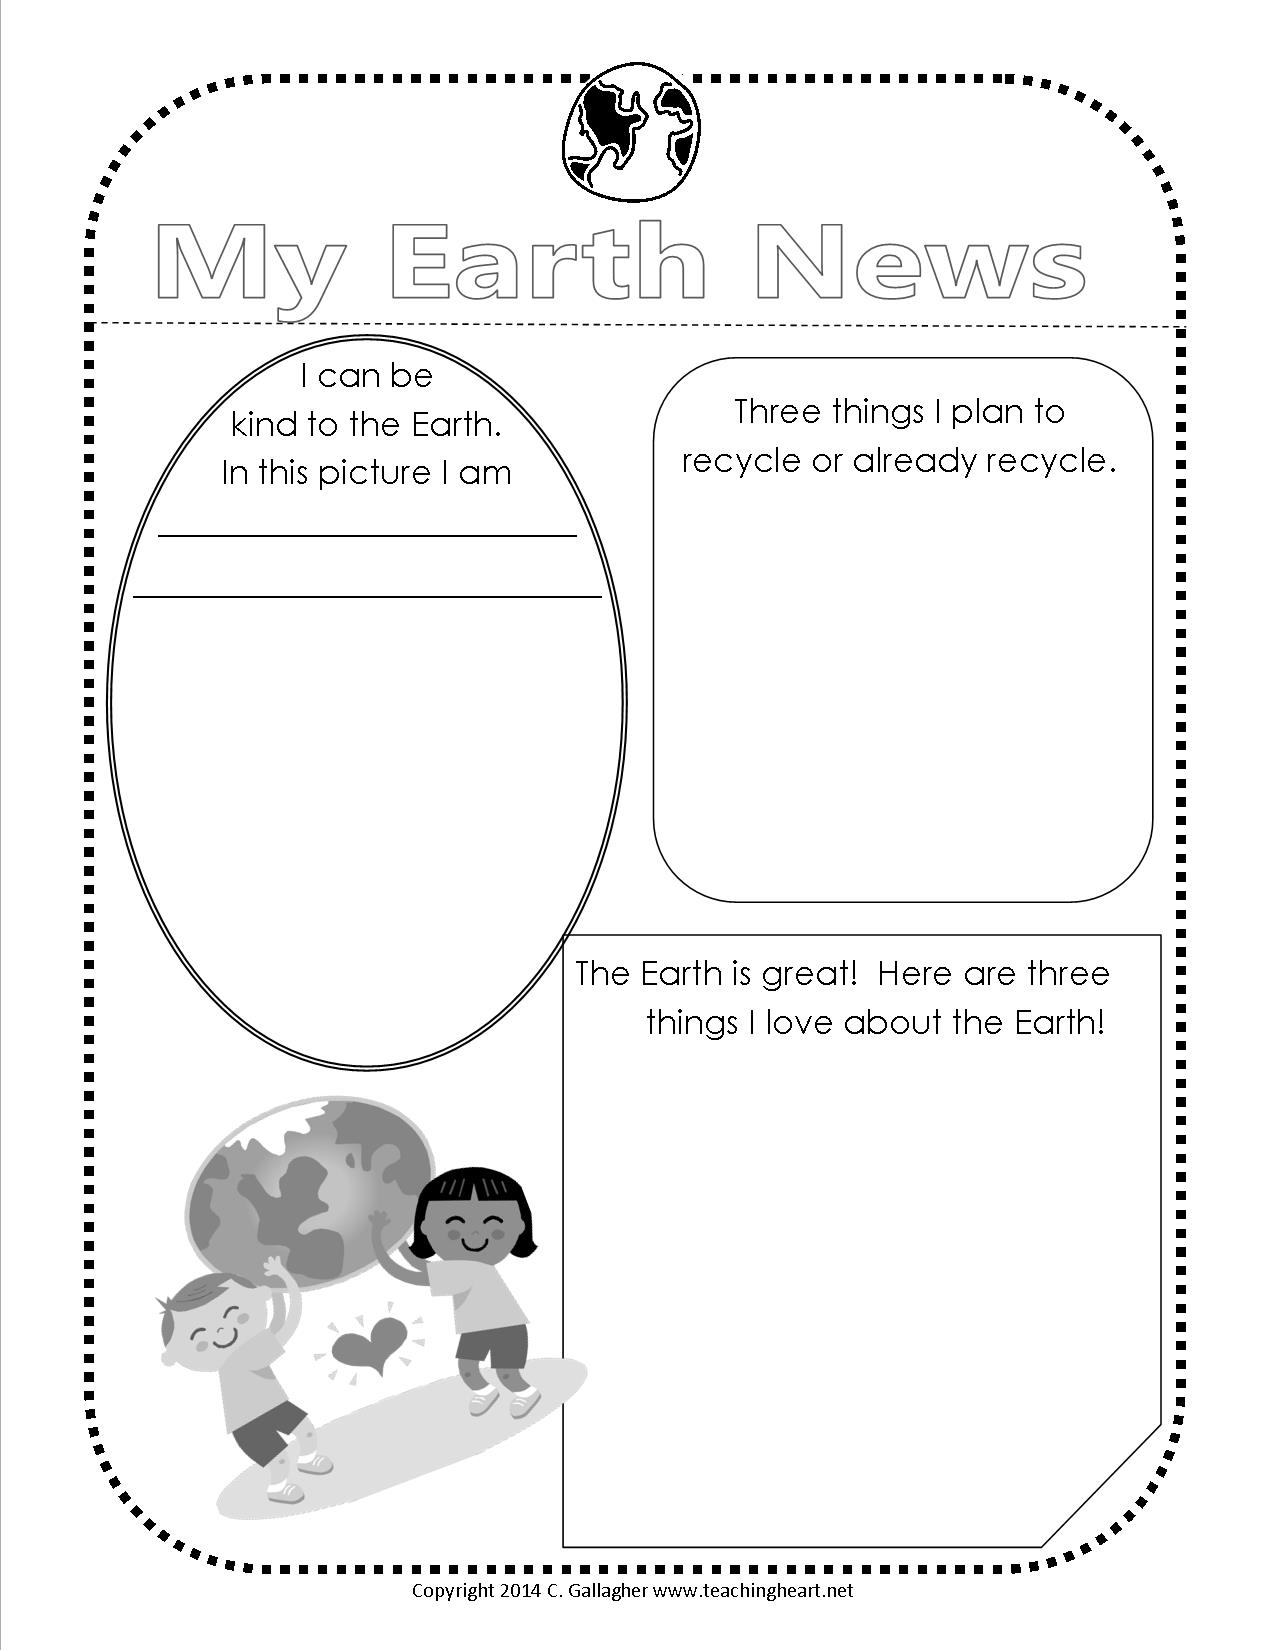 Earth Day Free Printable Teaching Heart Blog